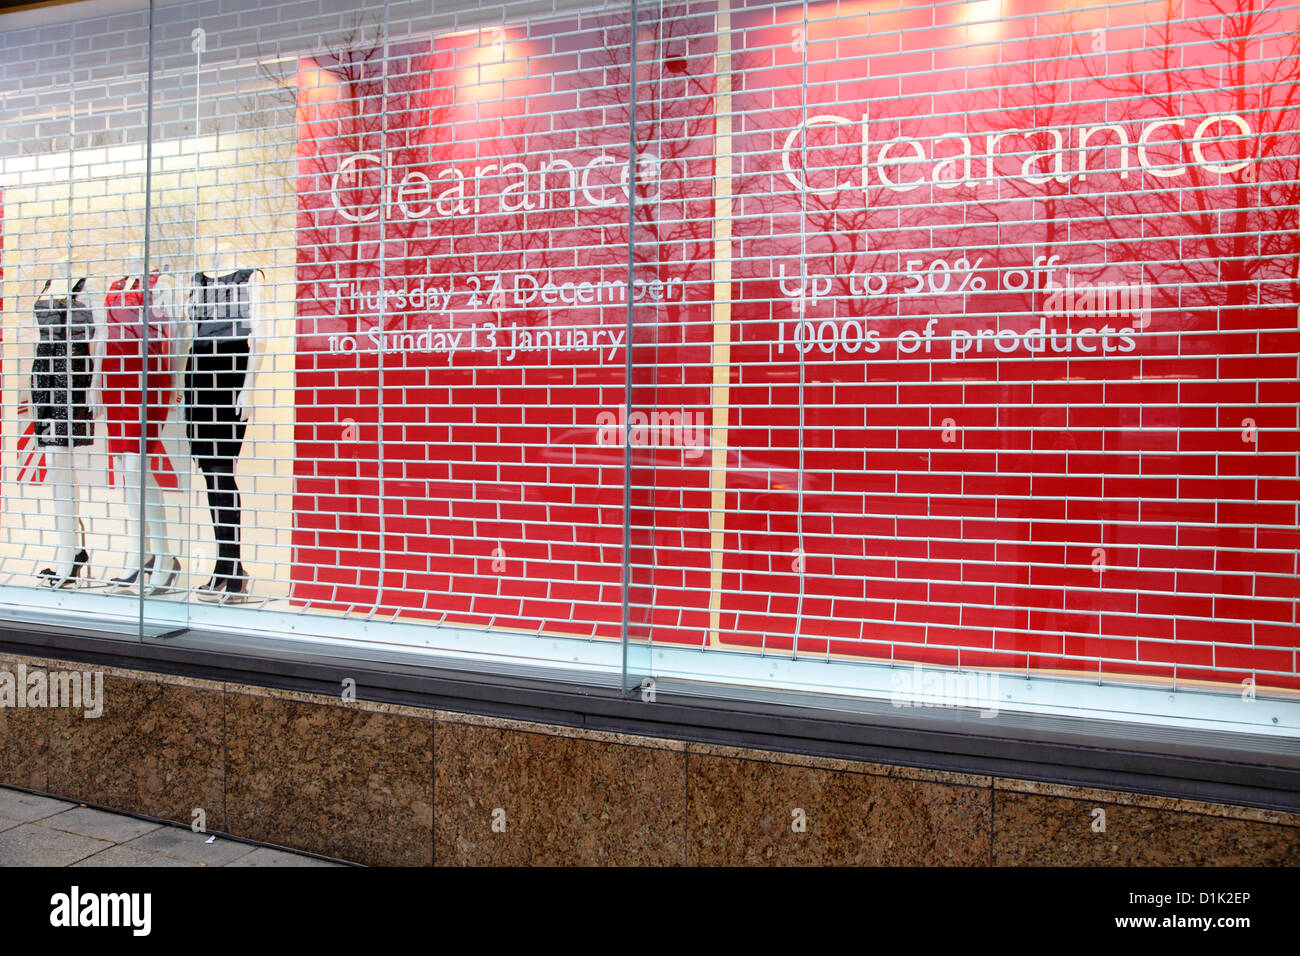 A John Lewis Shop Window With Clearance Signs Credit Kenny Williamson Alamy Live News